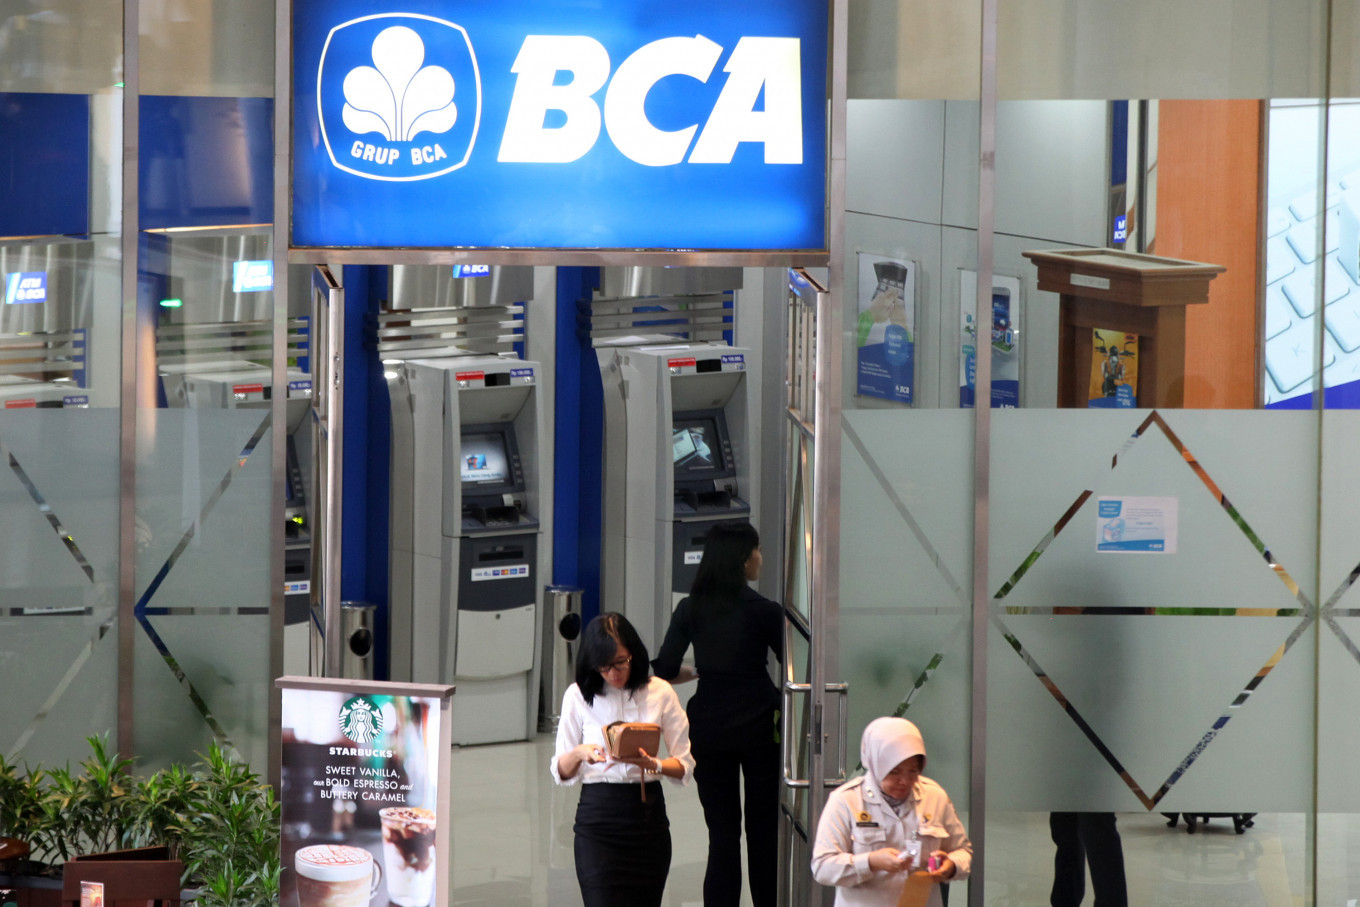 BCA H1 net profit contracts as loan growth cools, bad debts rise